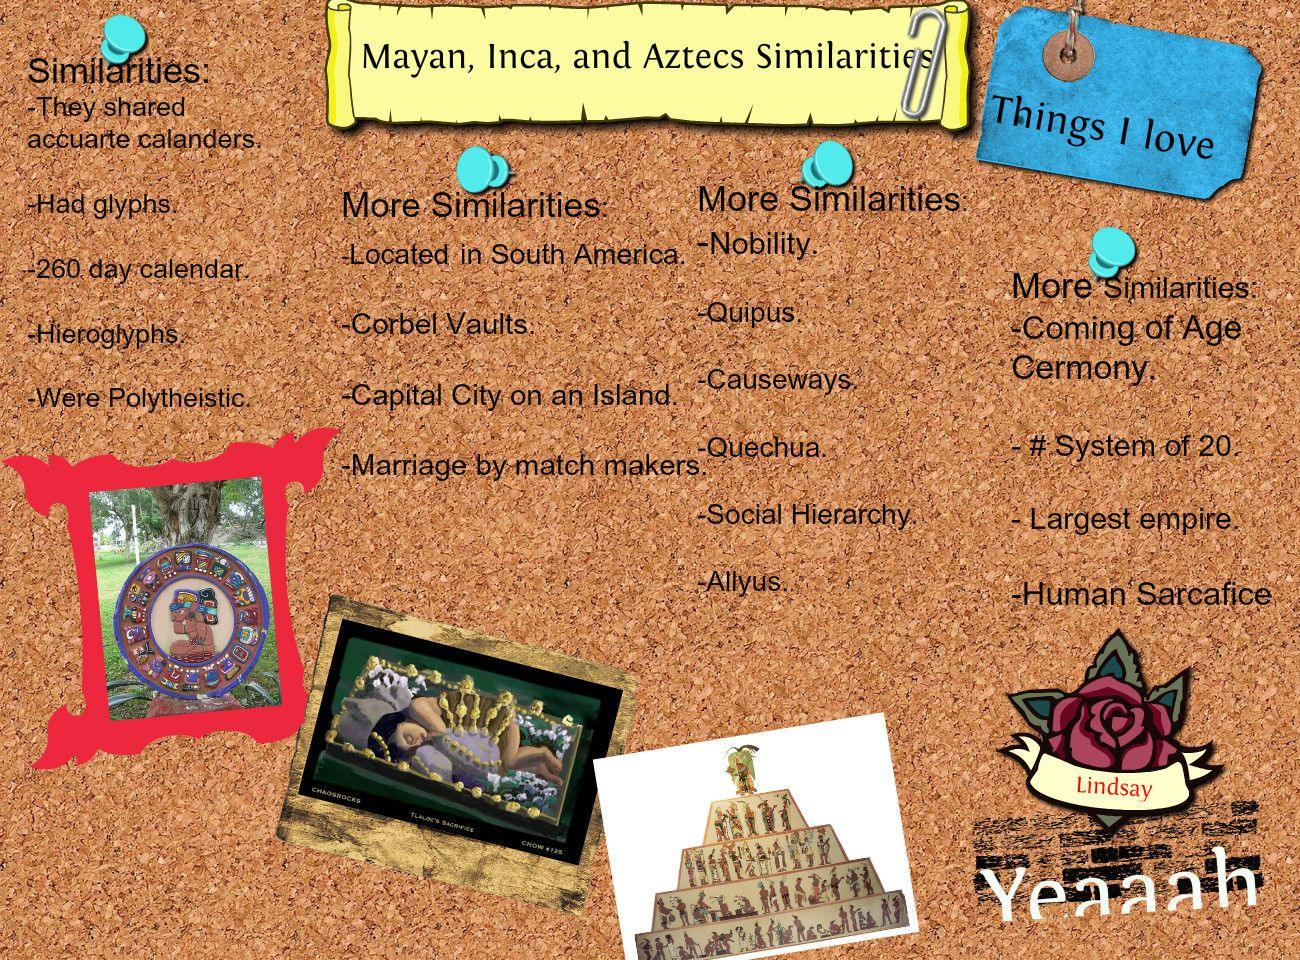 Mayan Inca Aztec Similarities With Images